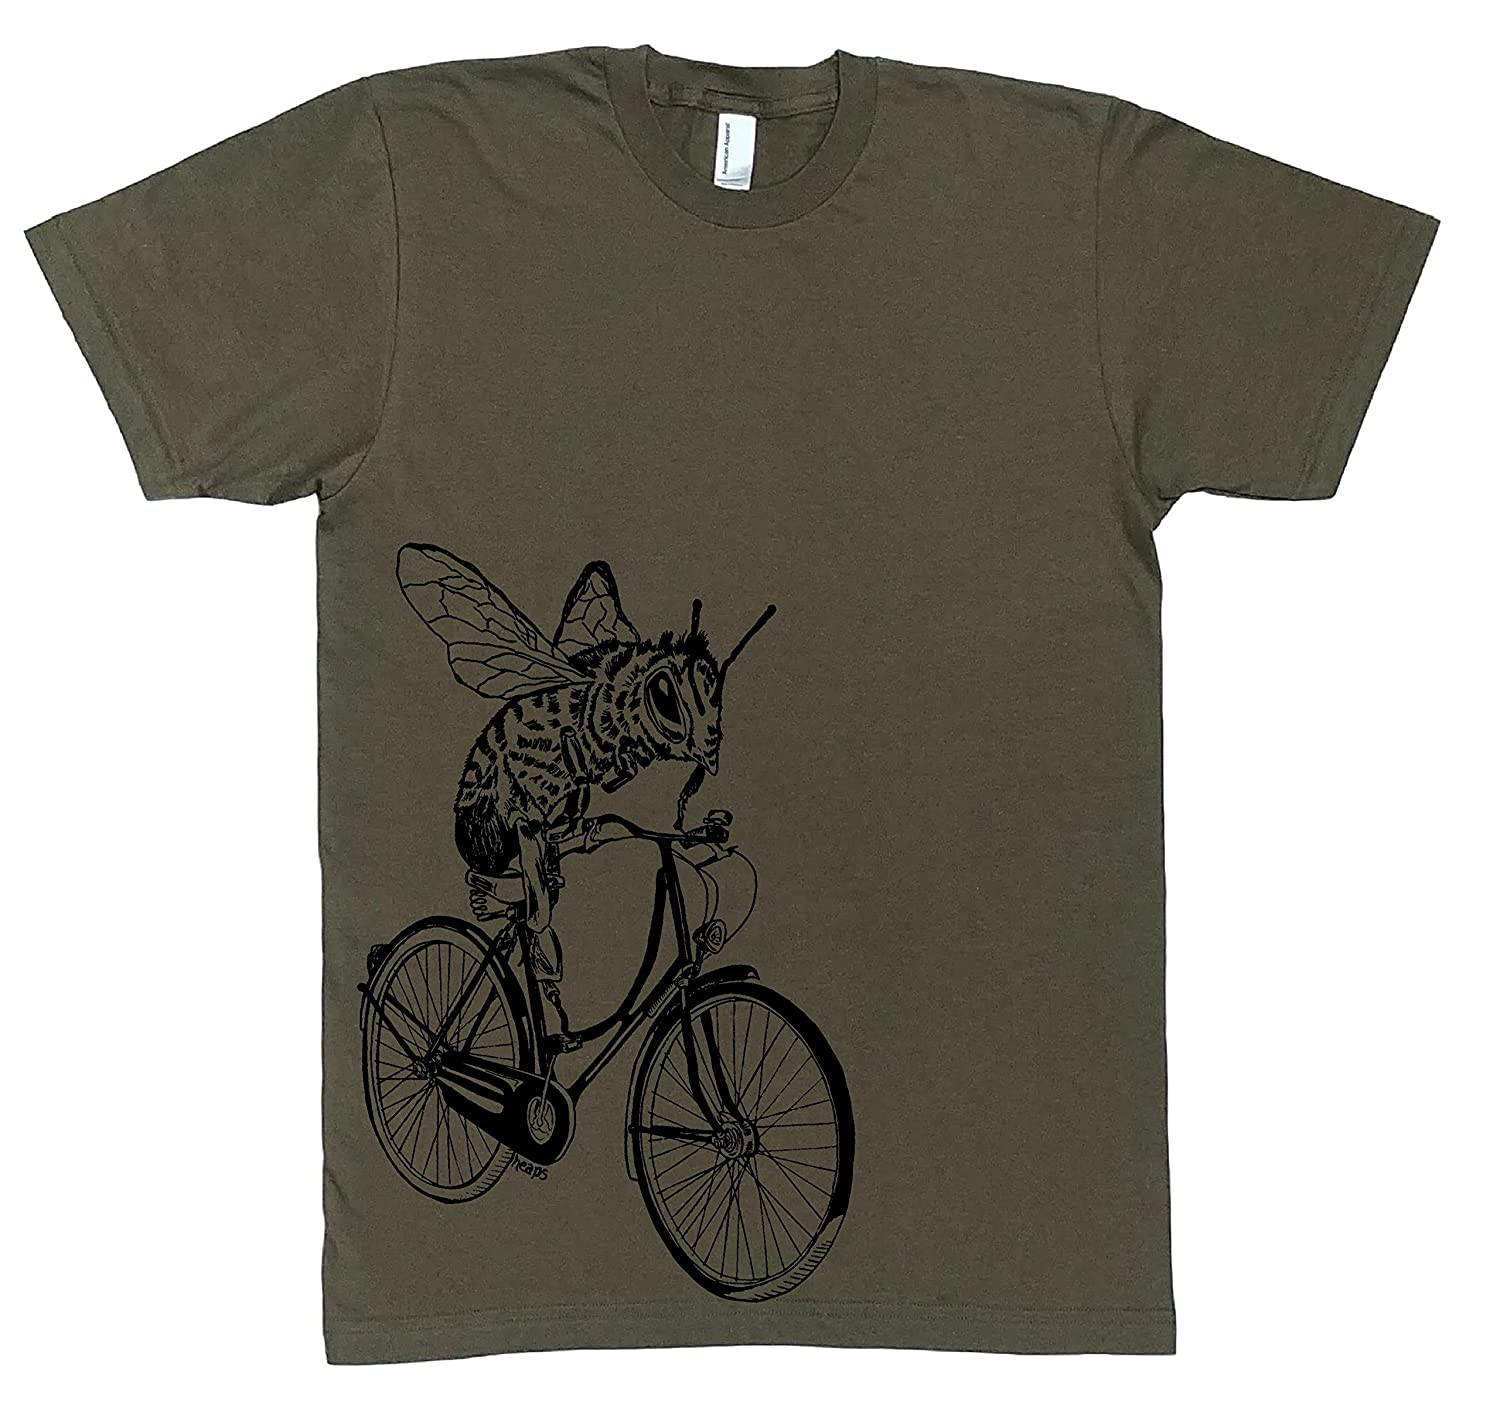 Funny Mens Graphic T Shirt -Bee on a Bike - Short Sleeve Top S M L XL XXL Army Green